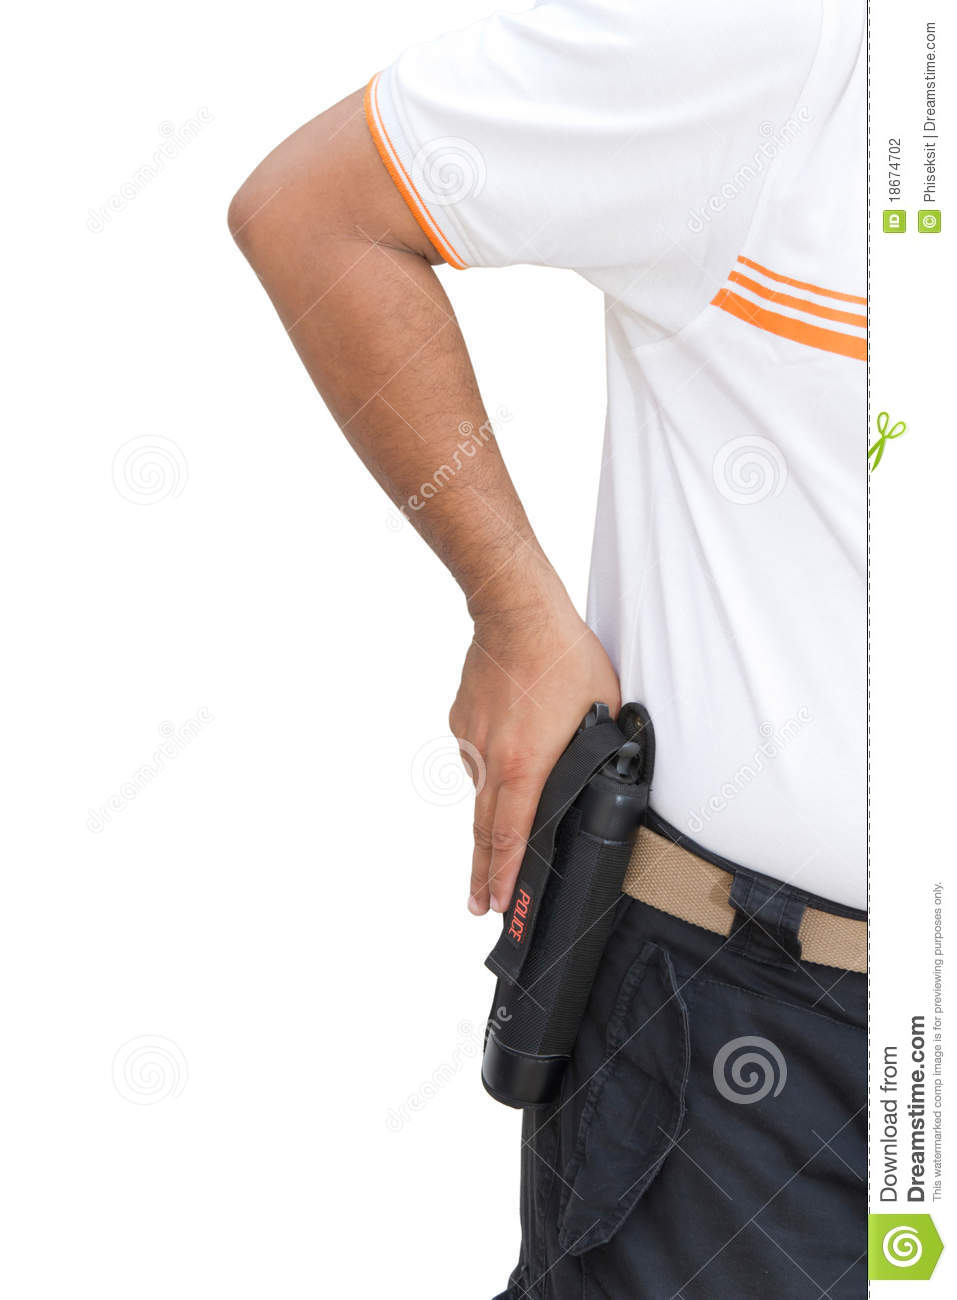 how to hold a gun